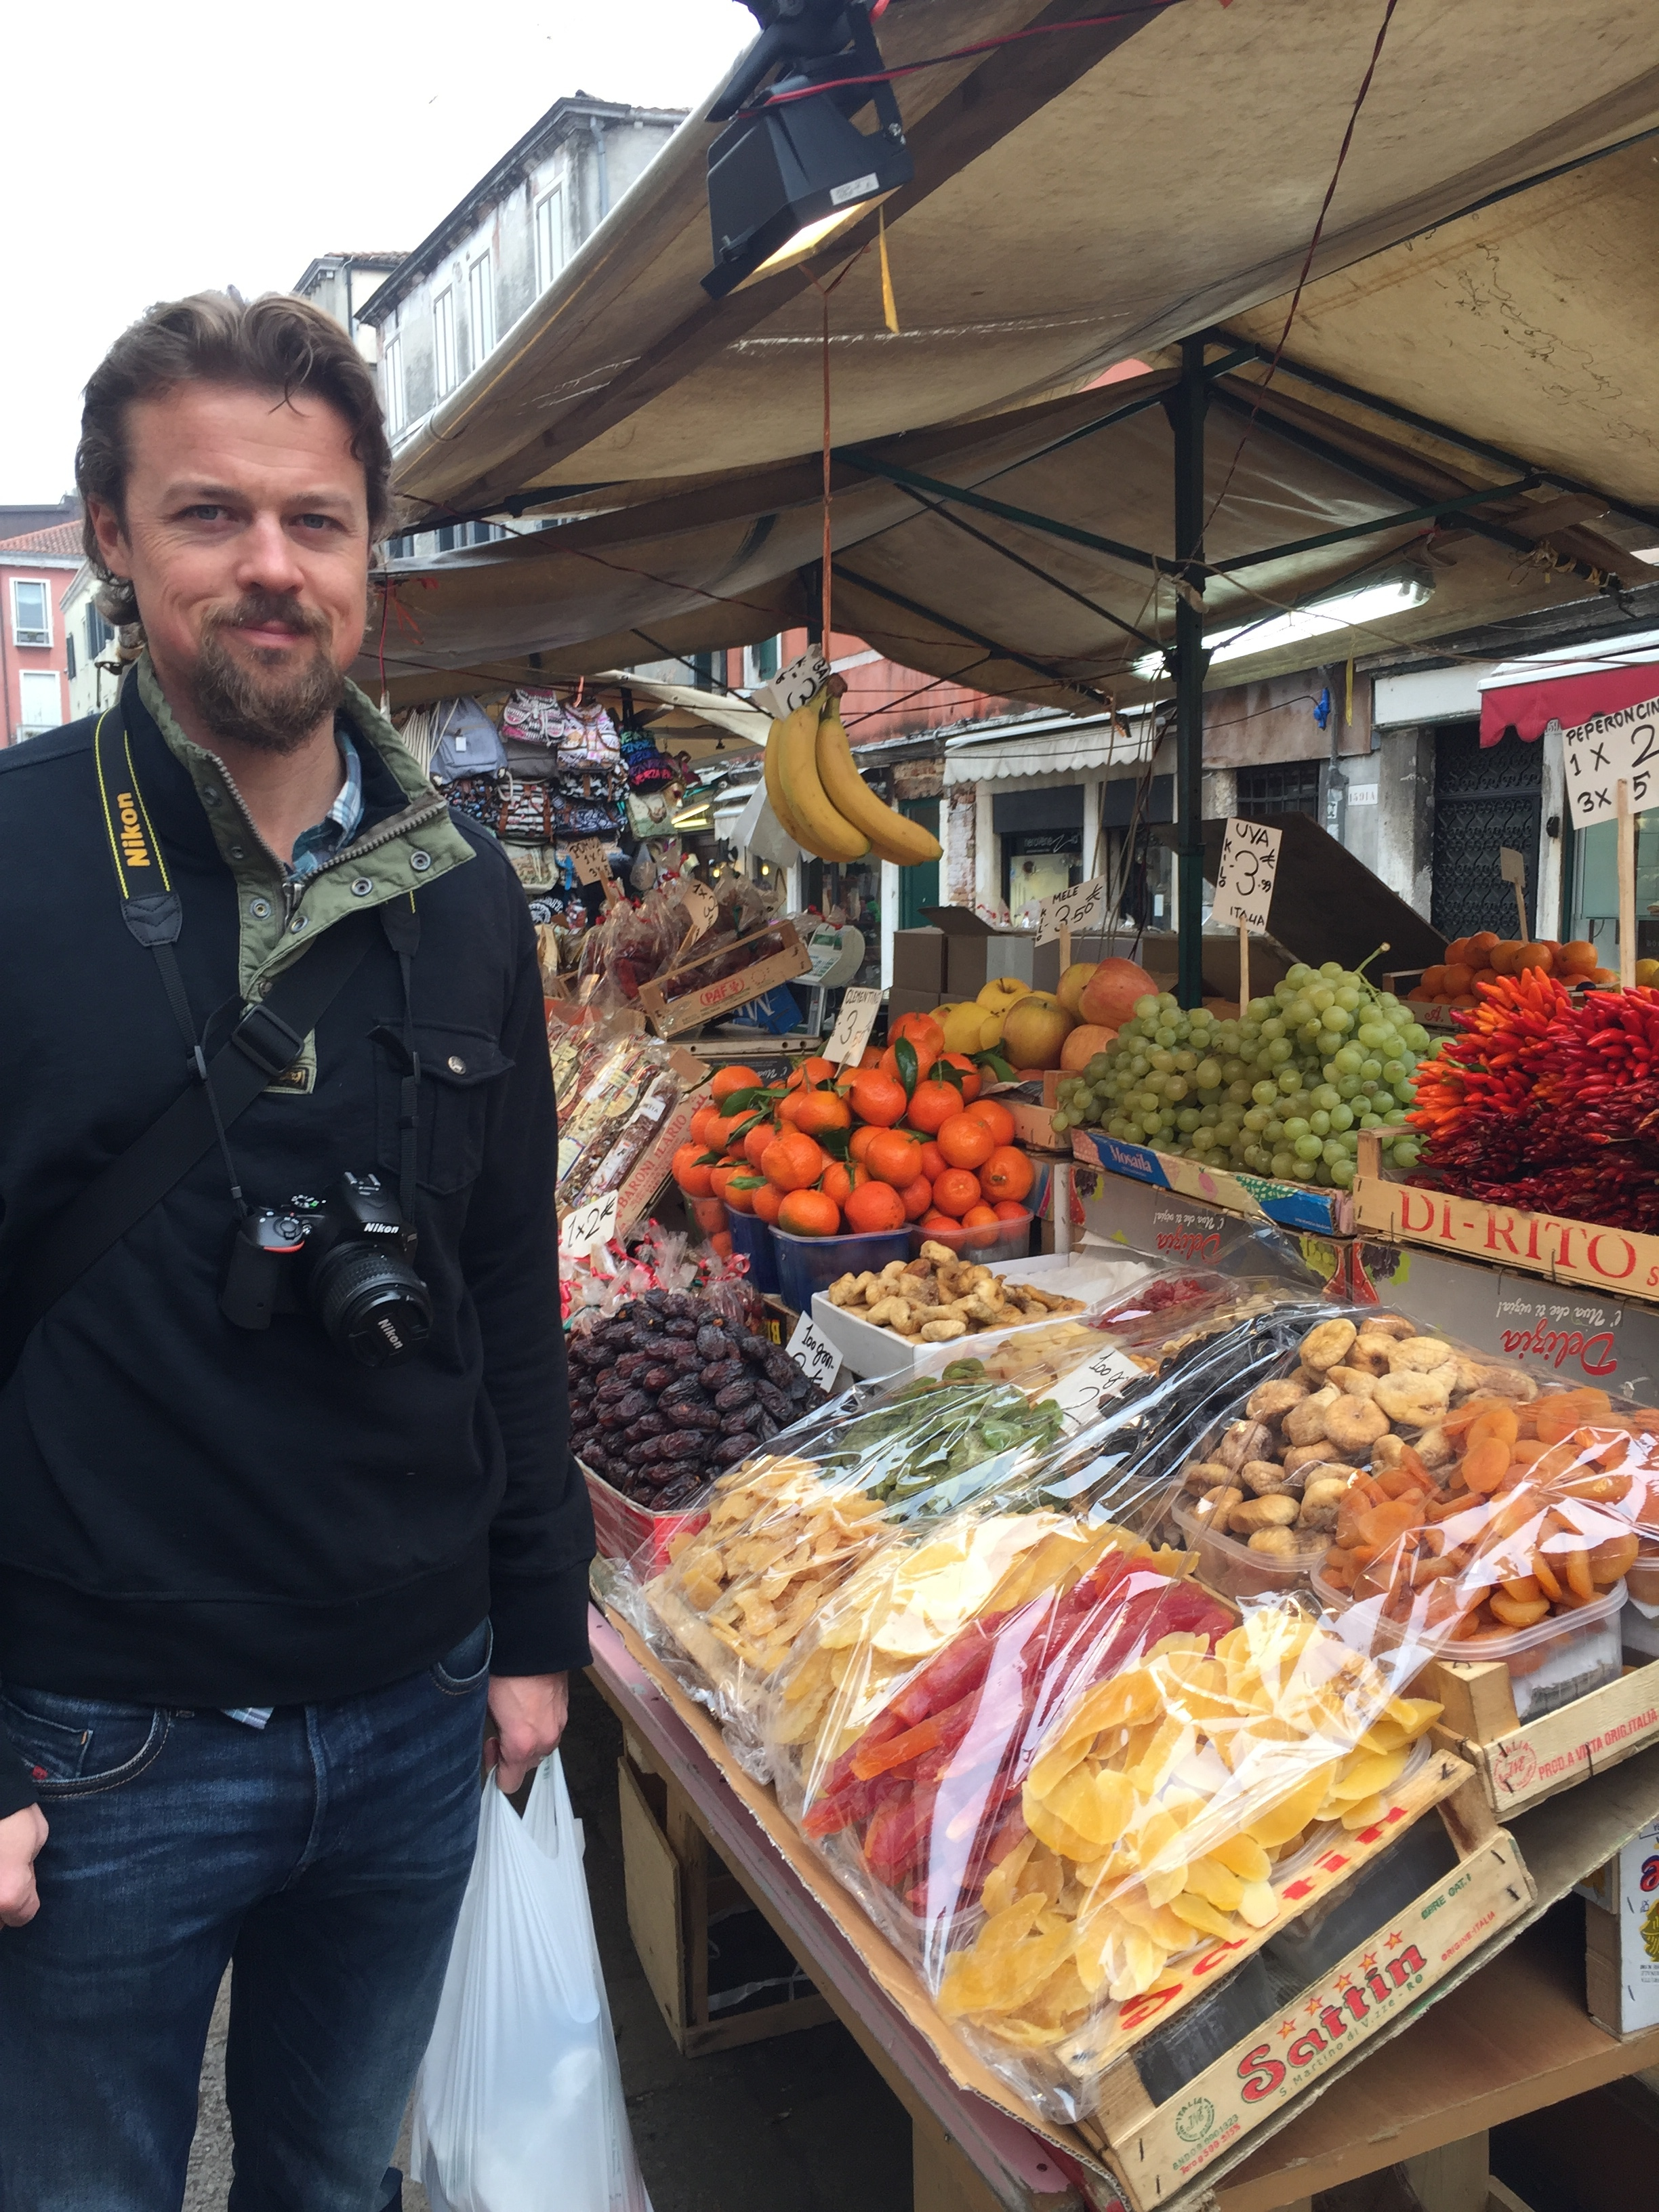 My handsome husband at the Market in Venice.